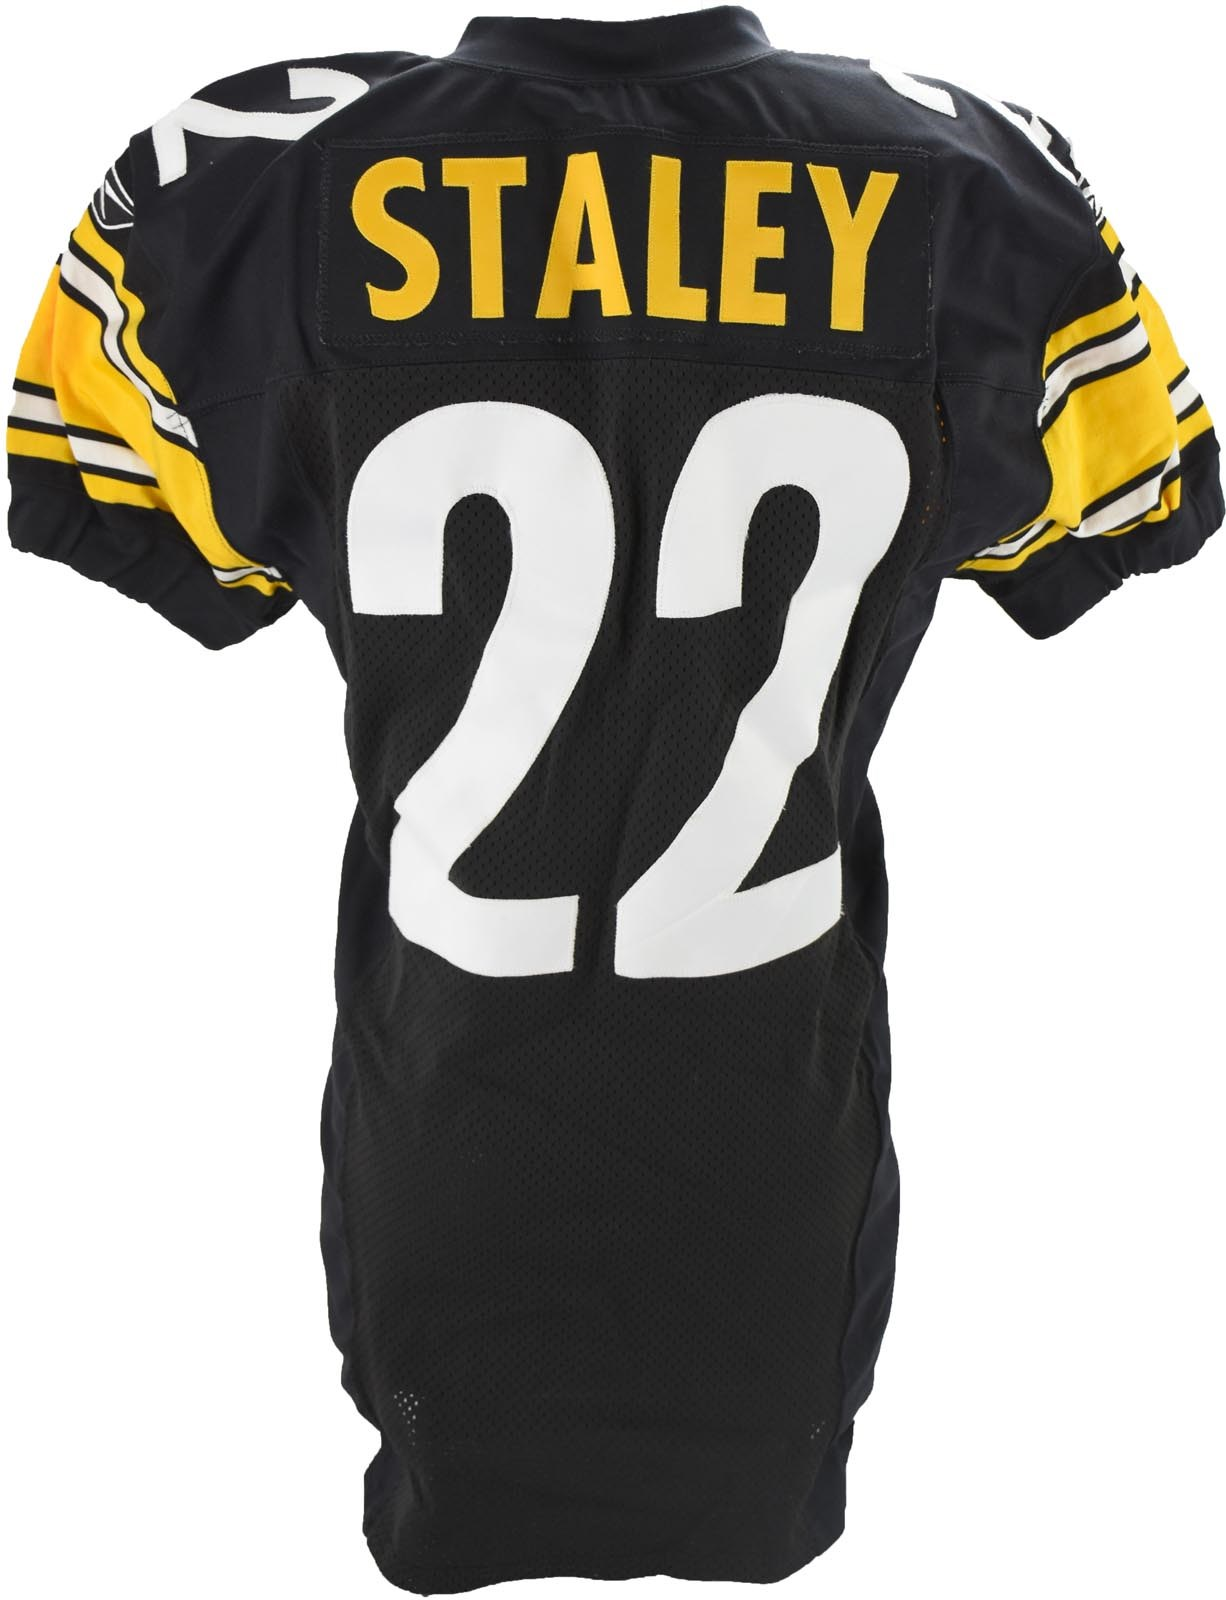 2004 Duce Staley Game Worn Steelers Jersey